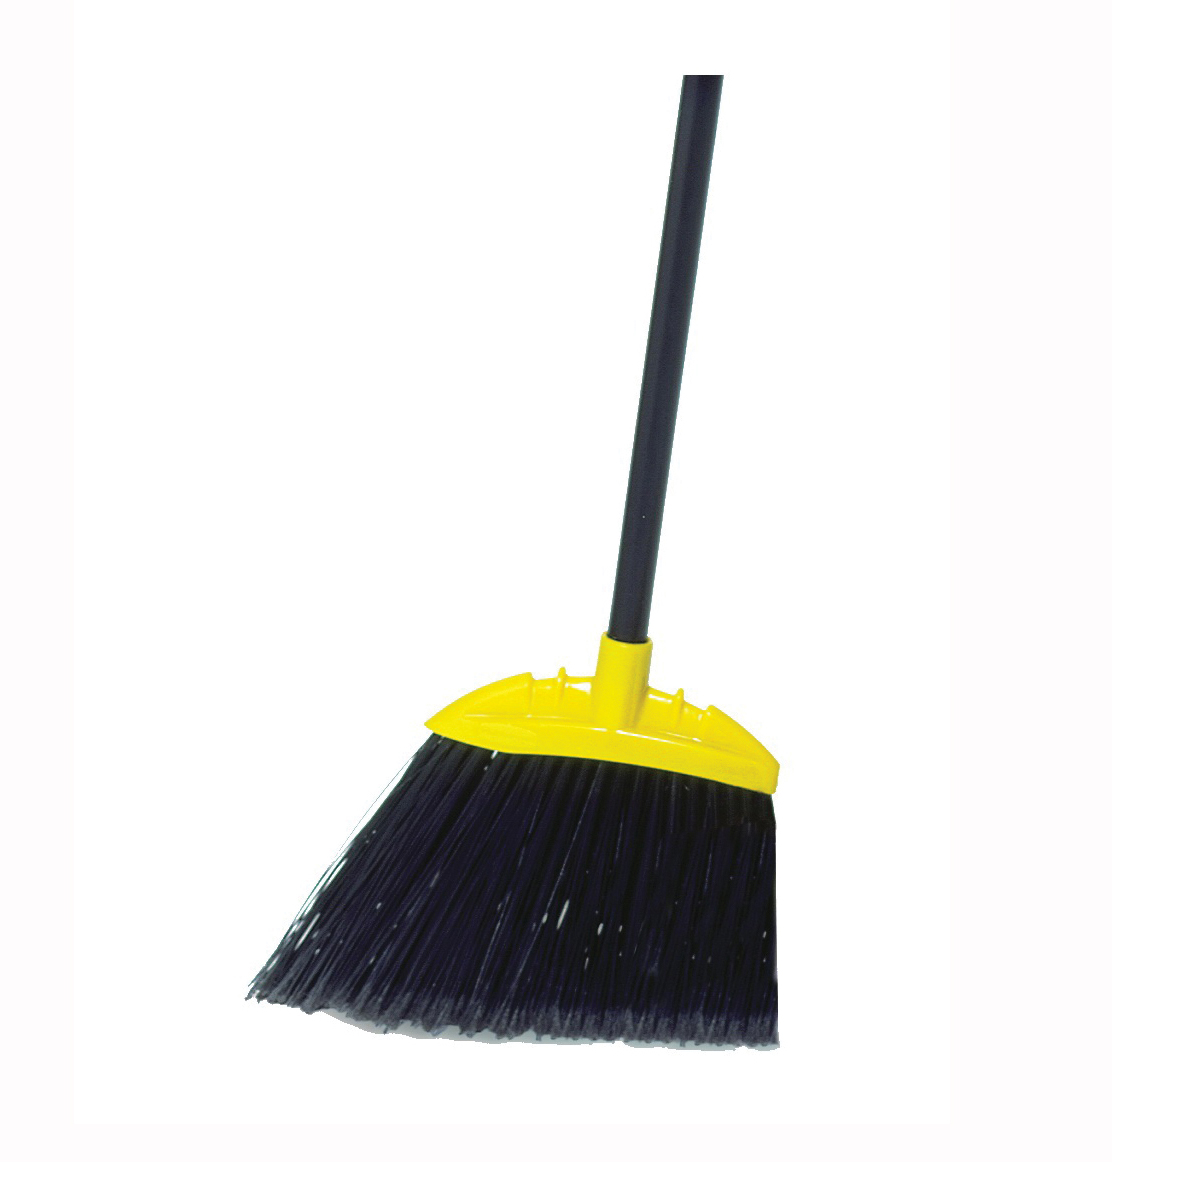 Picture of Rubbermaid FG638906BLA Angle Broom, 10-1/2 in Sweep Face, Polypropylene Bristle, Black Bristle, 55 in L